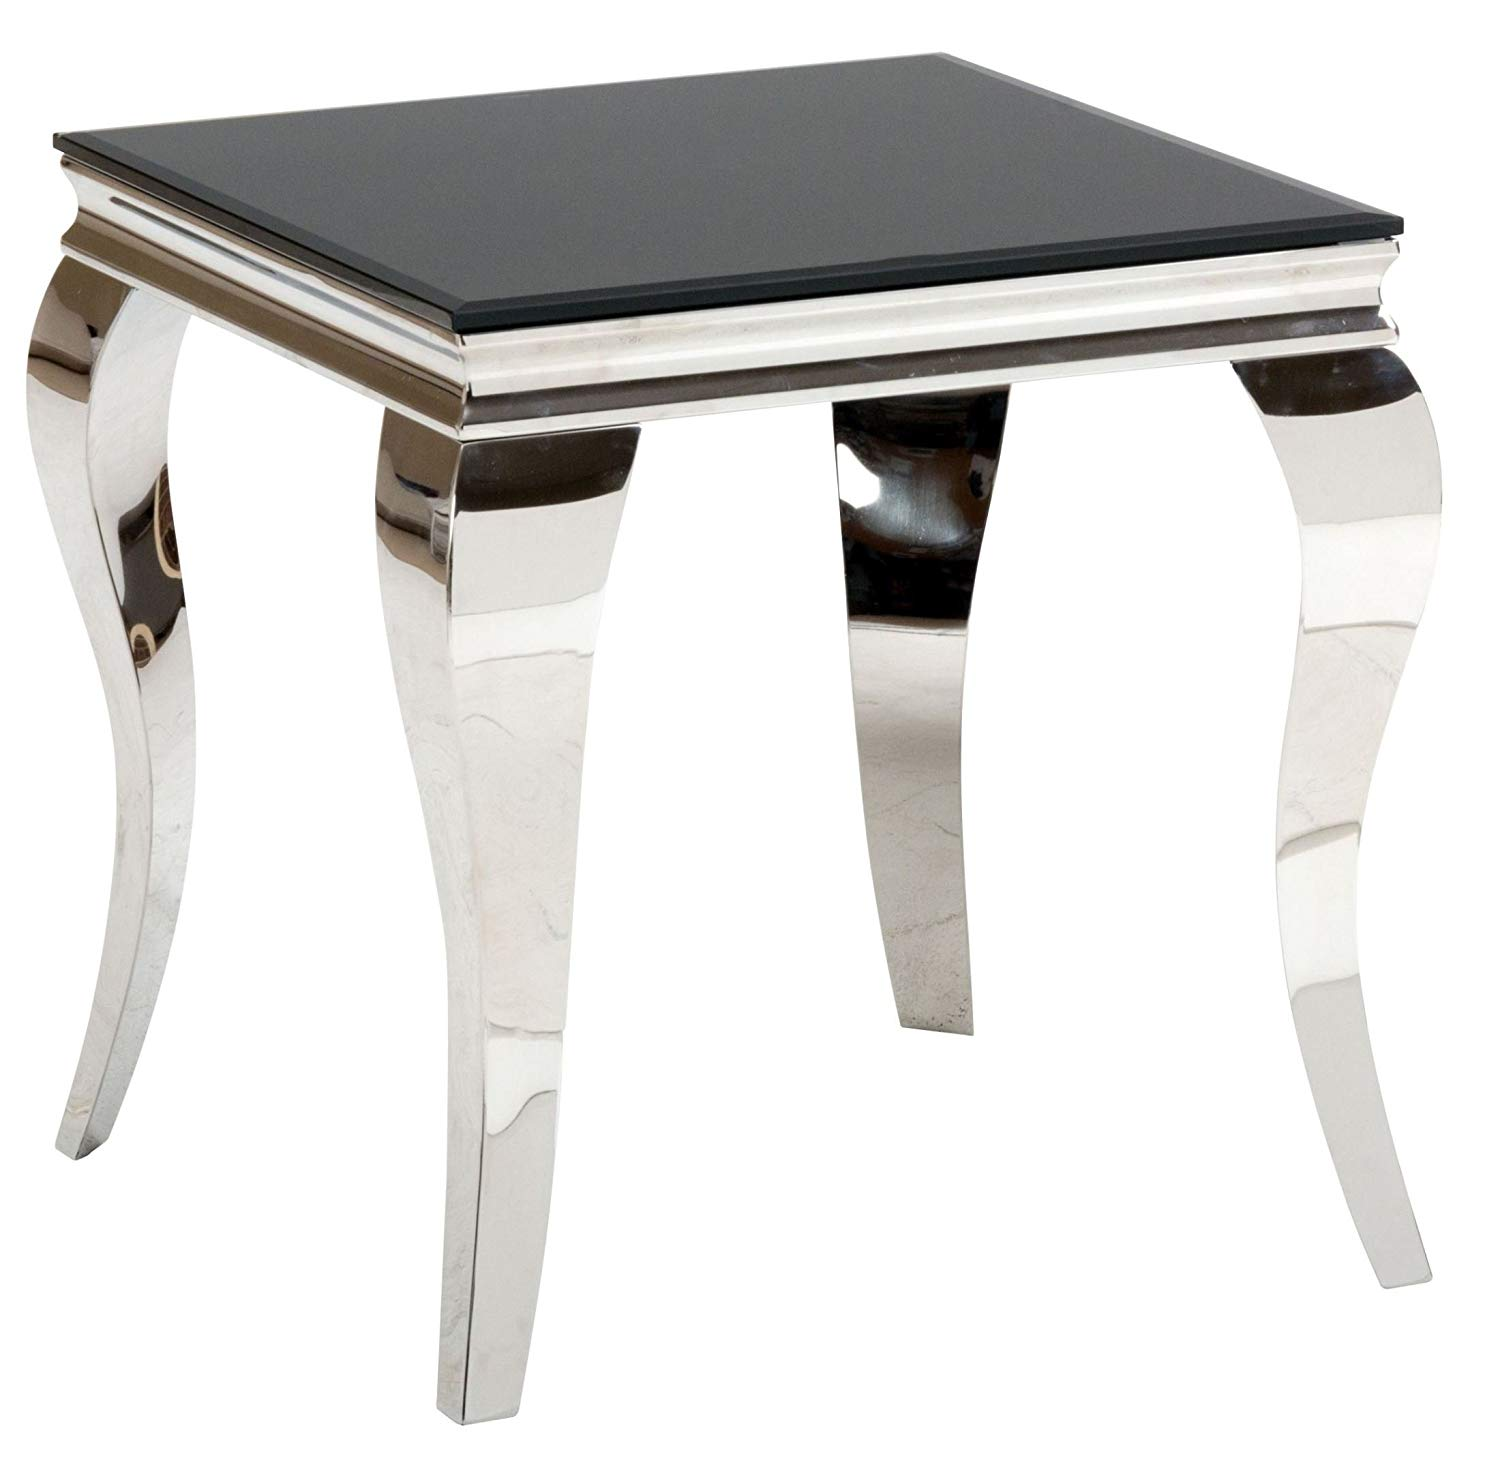 jofran tuxedo glass top end table black kitchen dining tables painting wood for outdoor use best sectional sofa small living room painted dog white wicker bedside whalen brown set